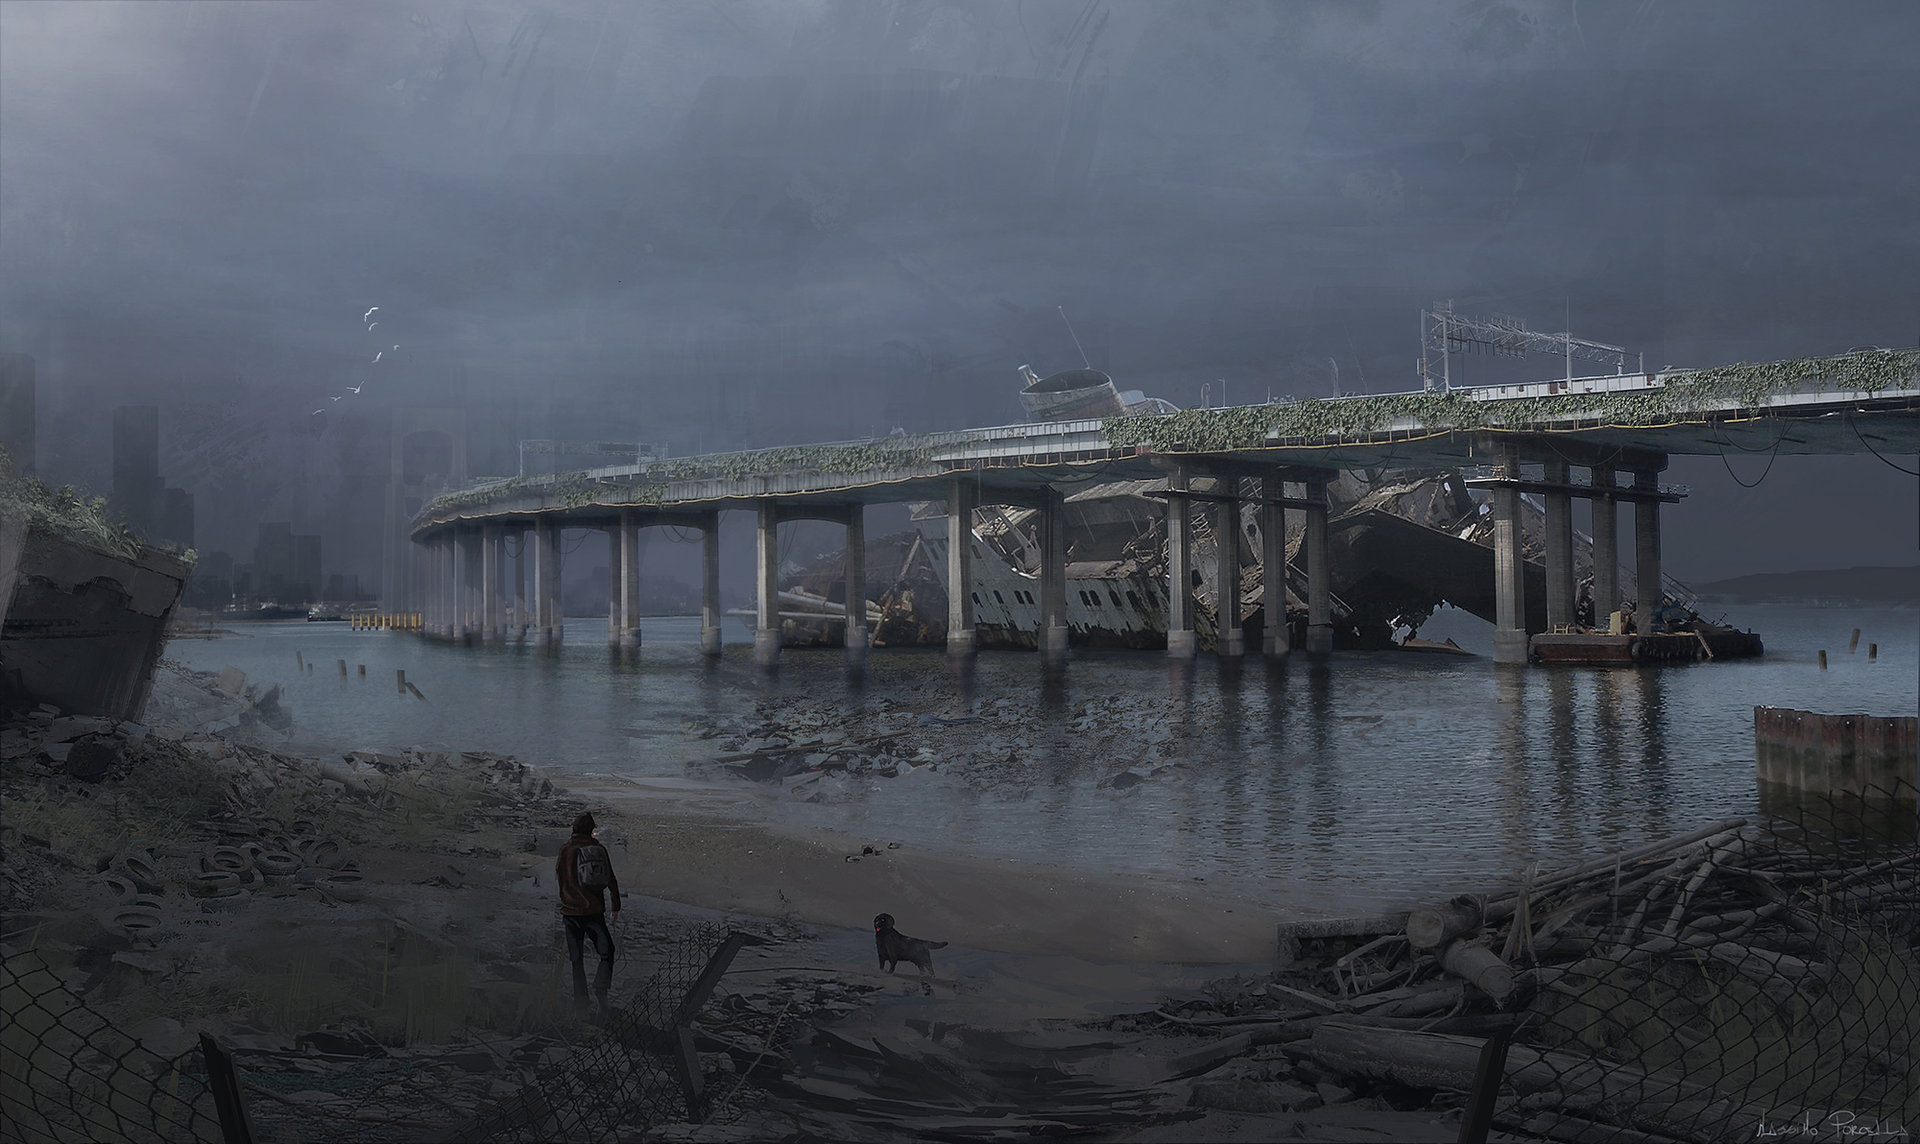 concept art, environment design, matte painting, character design, massimo porcella, tutorials environment, portofolio, concept artist, environment artist, matte painter, portfolio artist, workshop concept art, workshop environments design, concept art tutorial, sketch design, workshop concept art